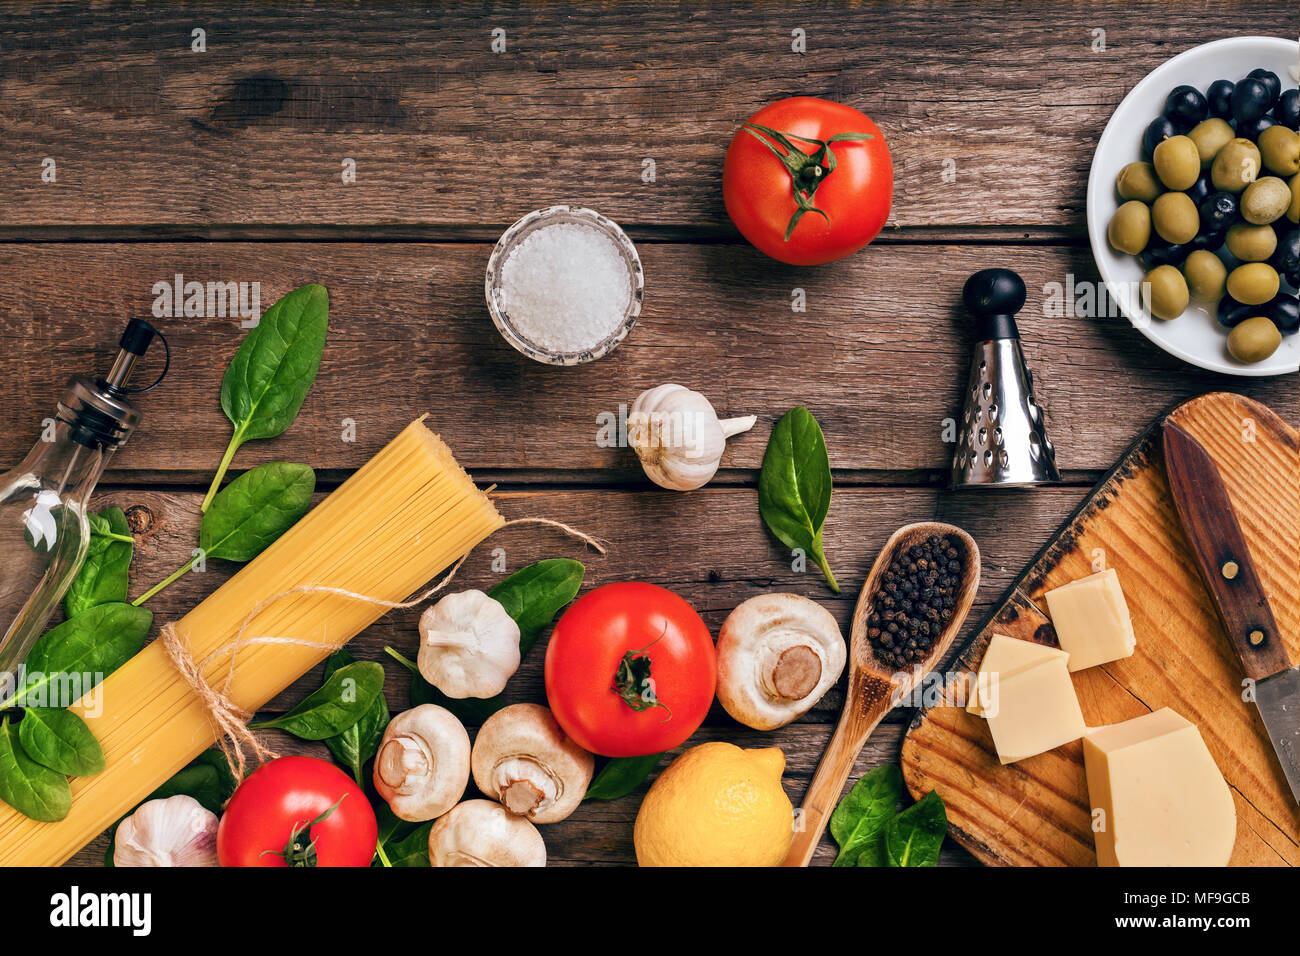 Italian food background with pasta, spices and vegetables. Top view, copy space. - Stock Image